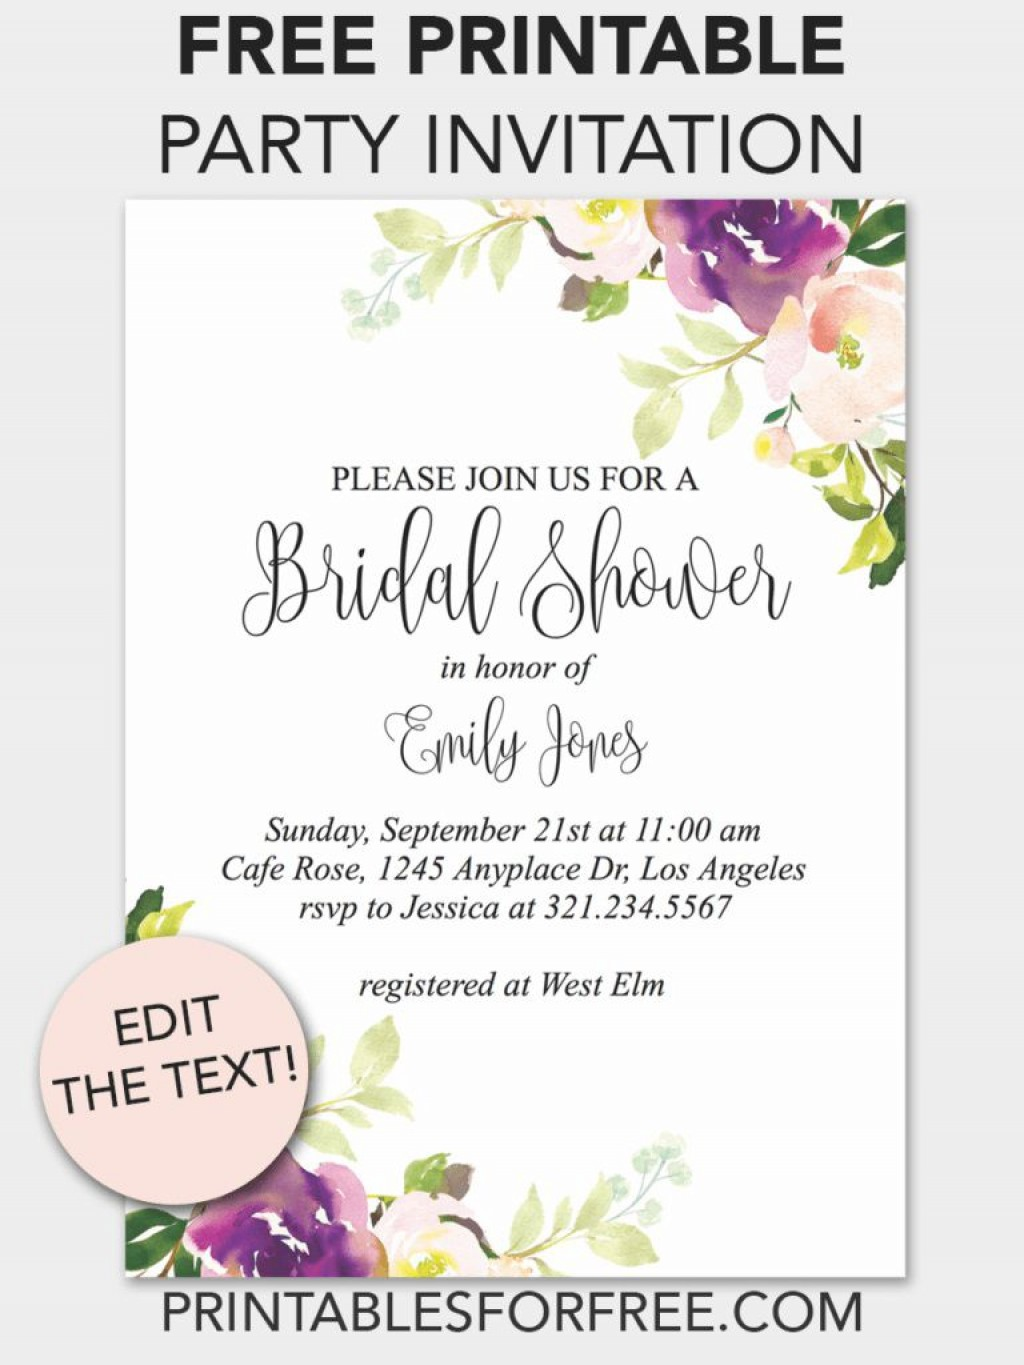 002 Incredible Free Bridal Shower Invite Template Concept  Templates Invitation To Print Online Wedding For Microsoft WordLarge